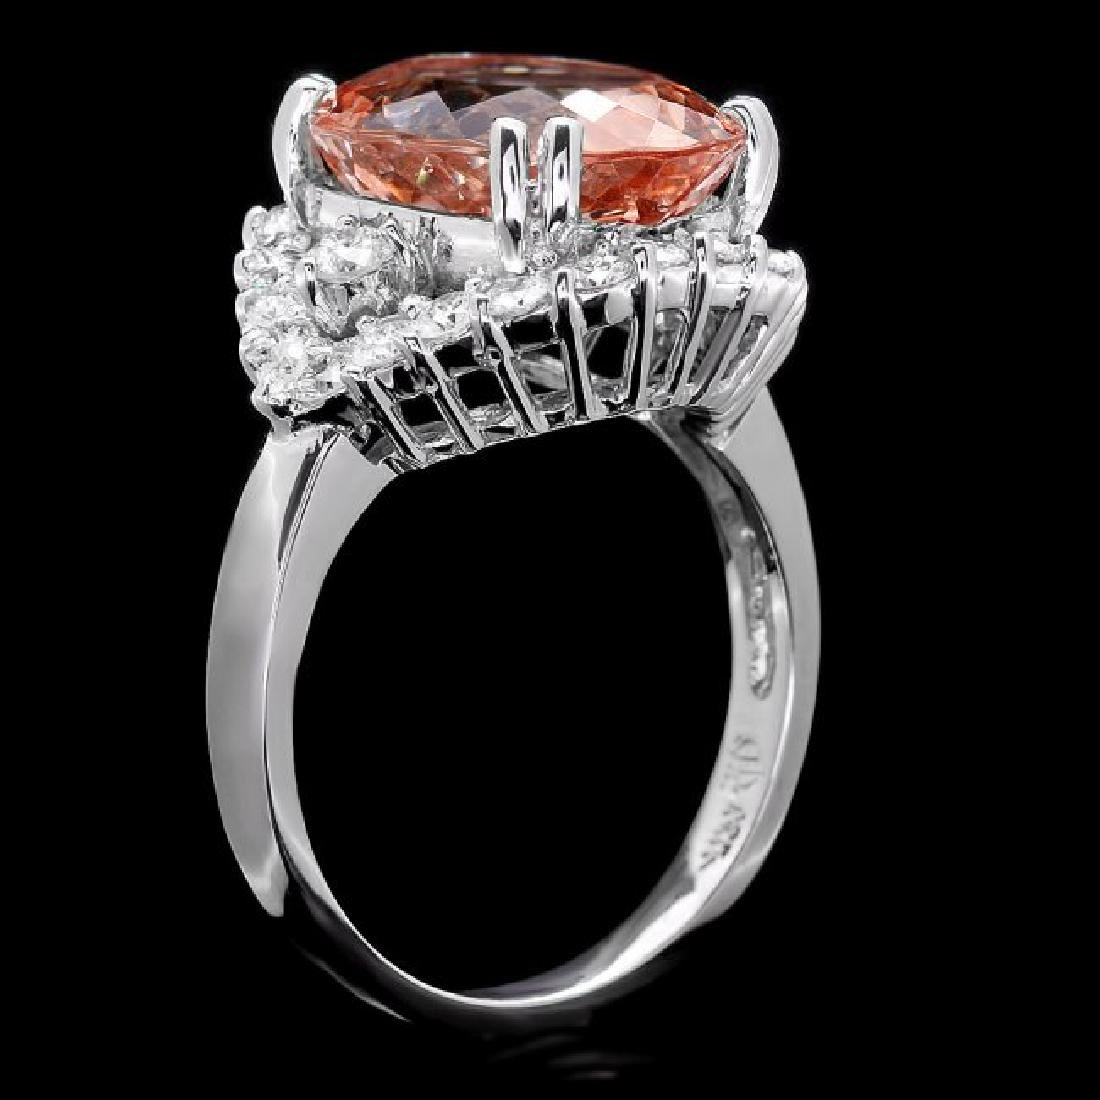 14k Gold 6.00ct Morganite 1.00ct Diamond Ring - 2